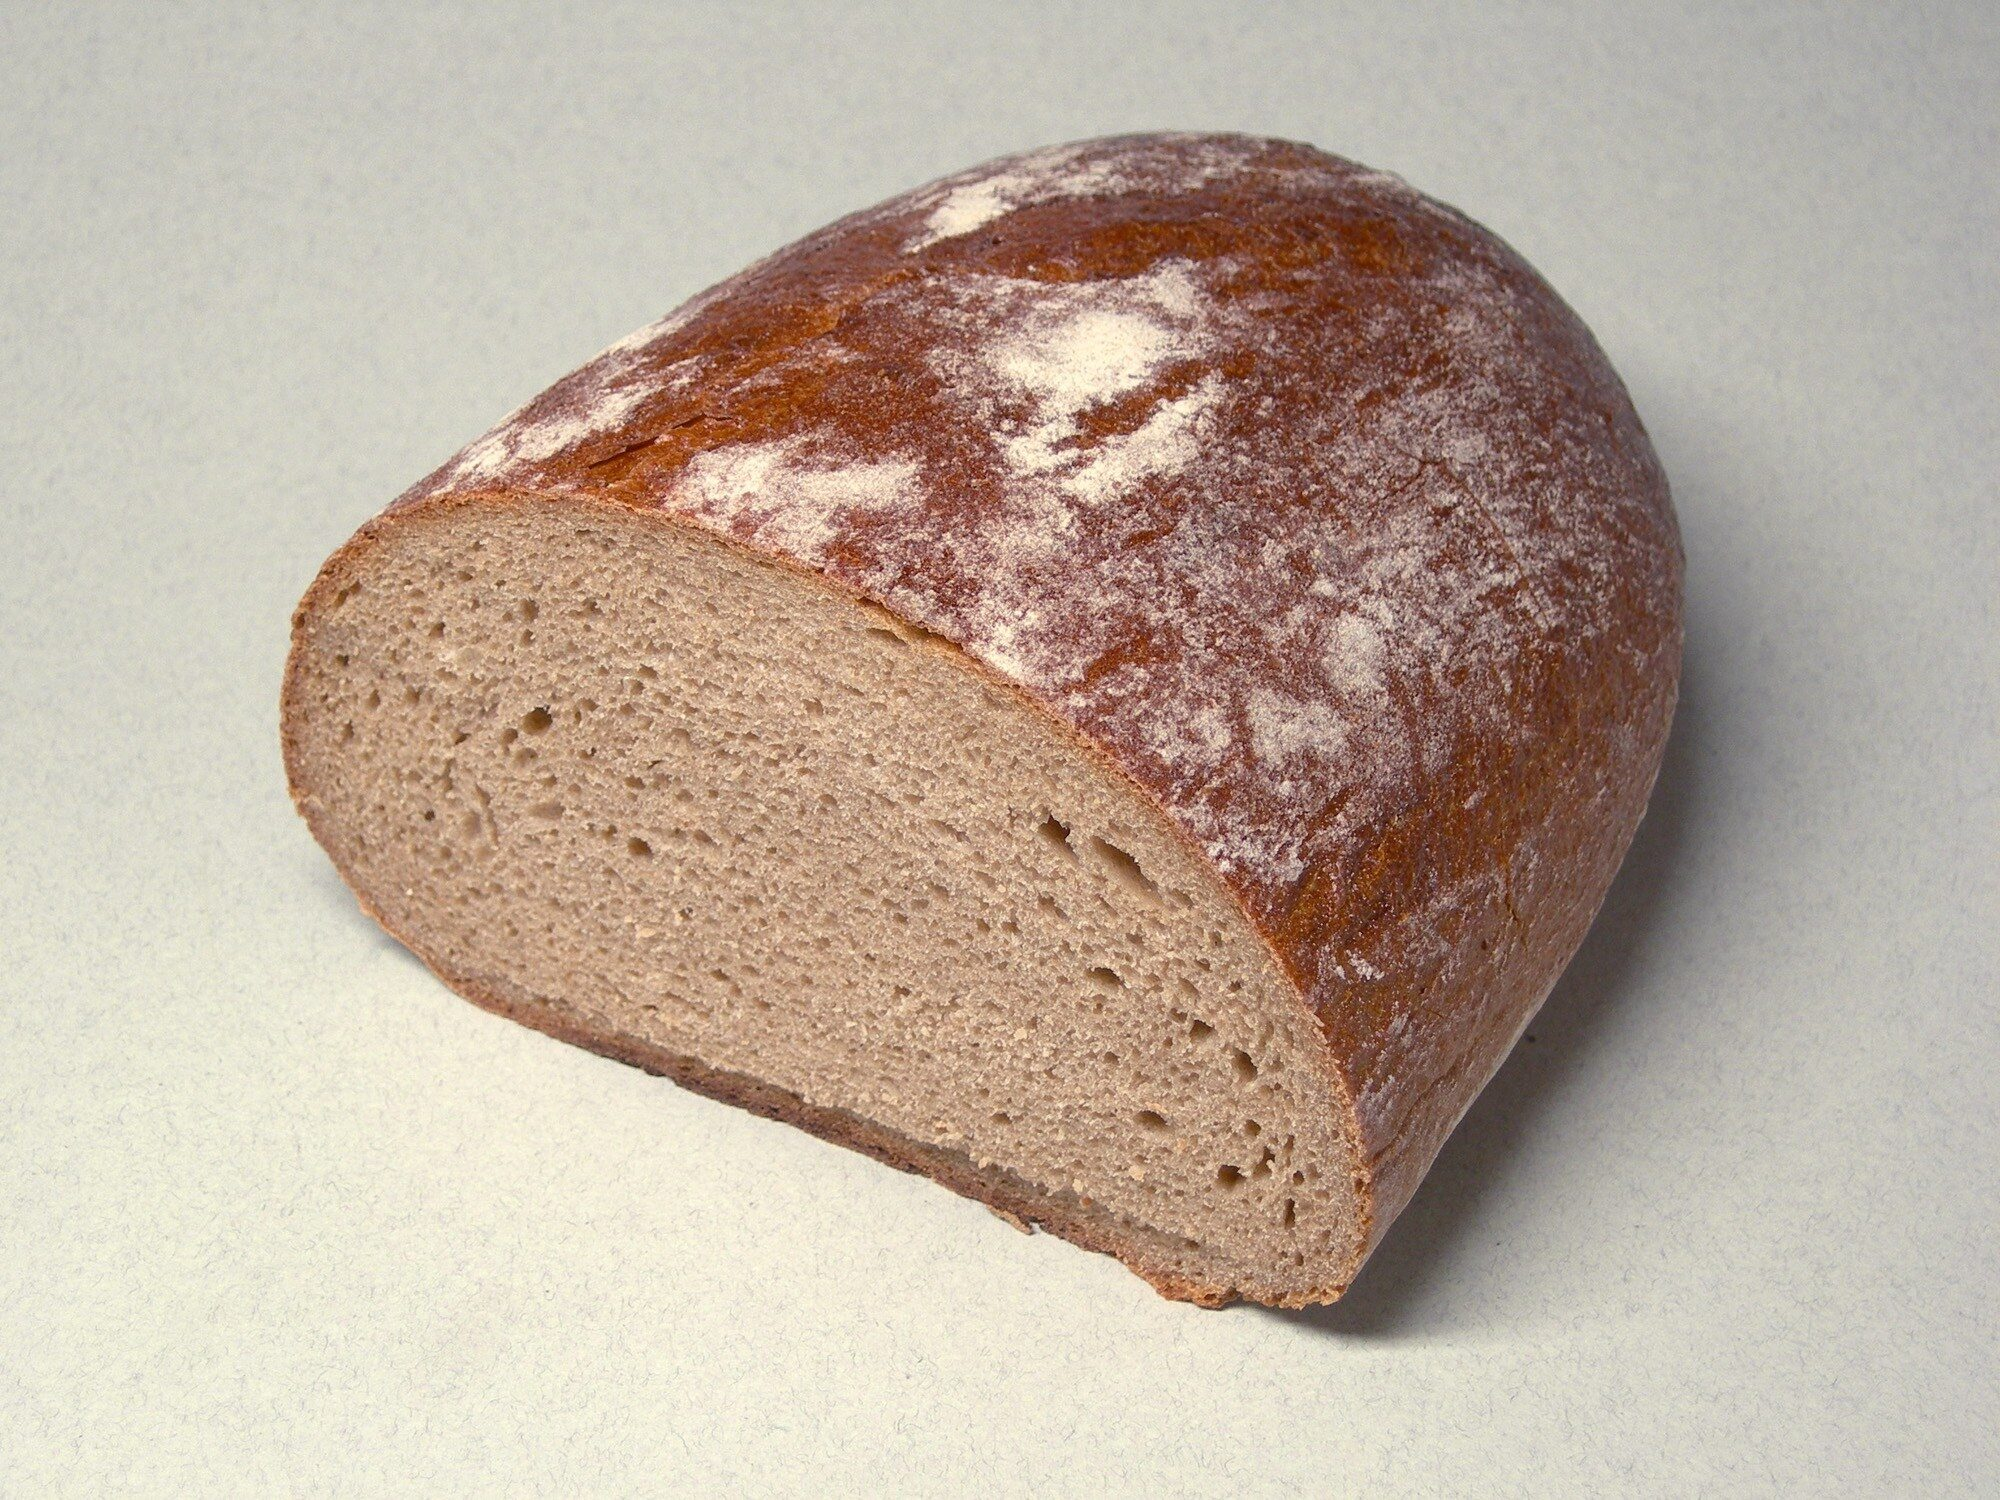 Brot 211 - Product